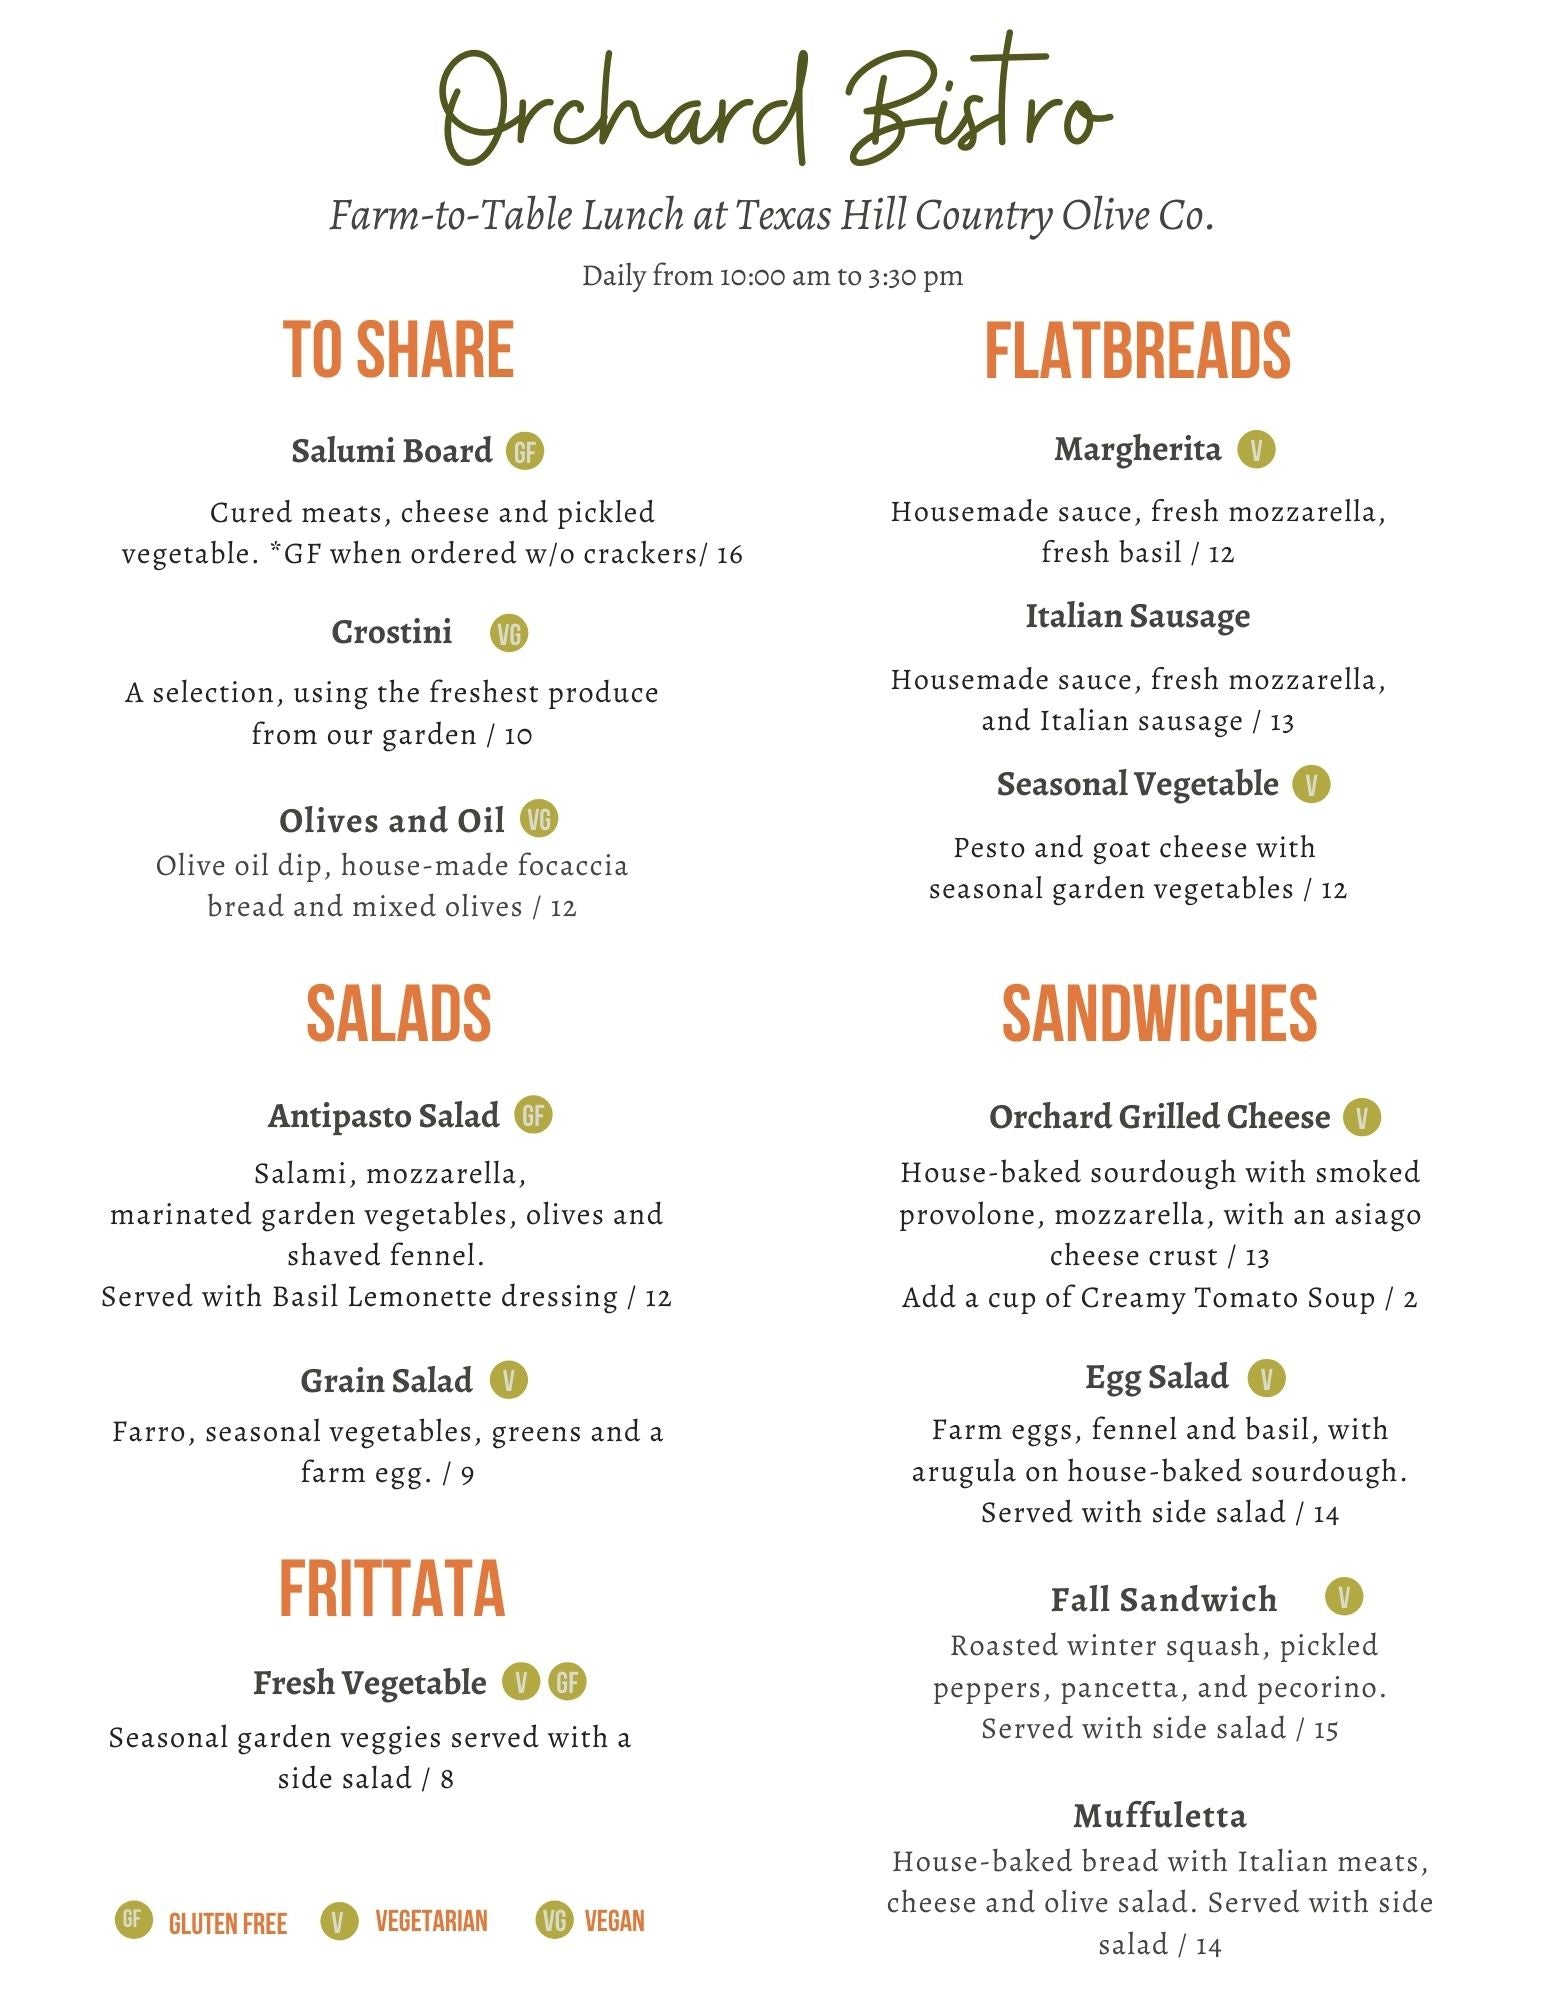 Farm-to-table Menu | Texas Hill Country Olive Co.